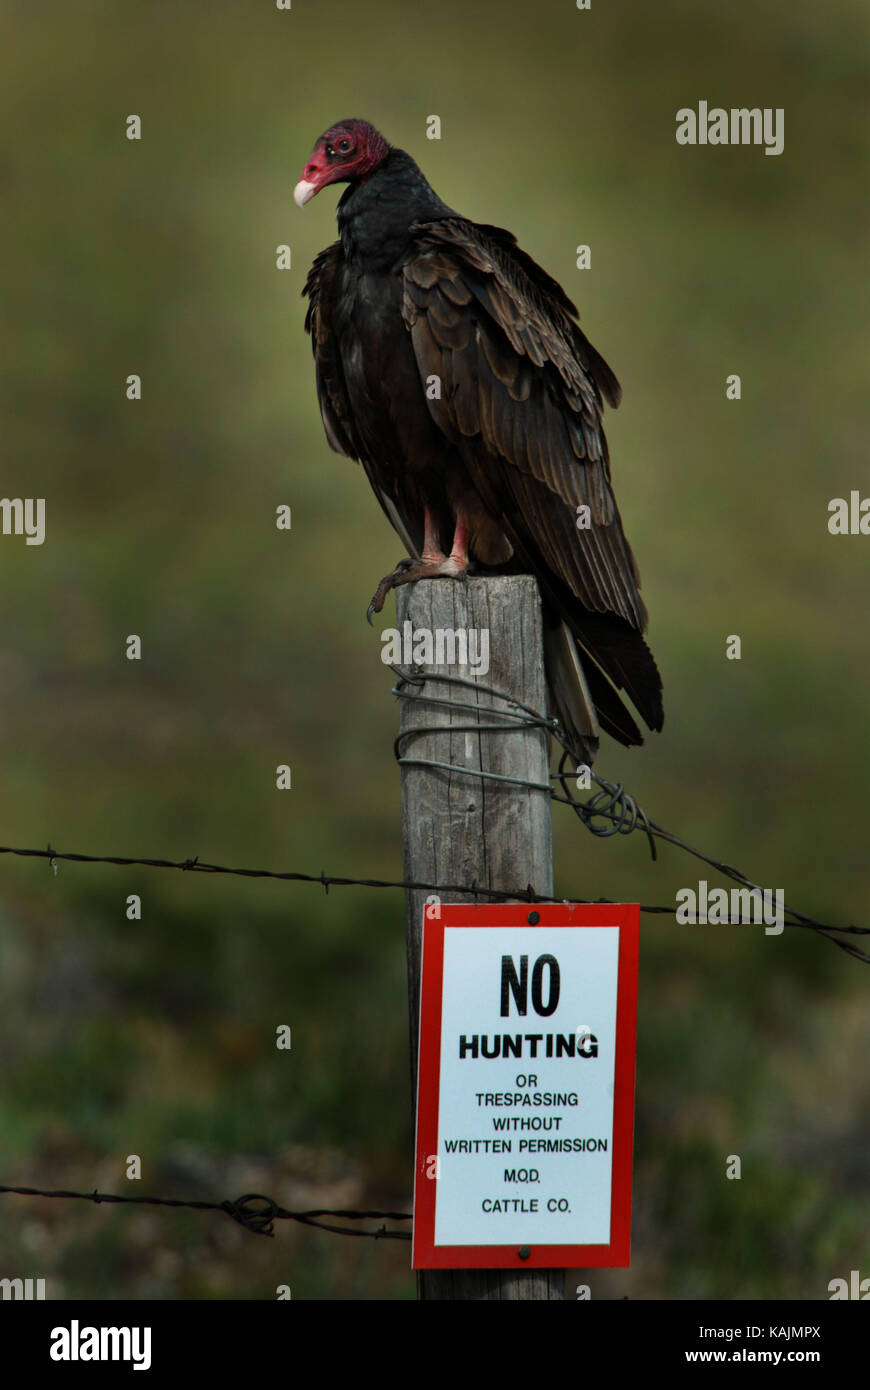 Turkey Vulture Sitting on a Fence Post with a No Hunting Sign - Stock Image